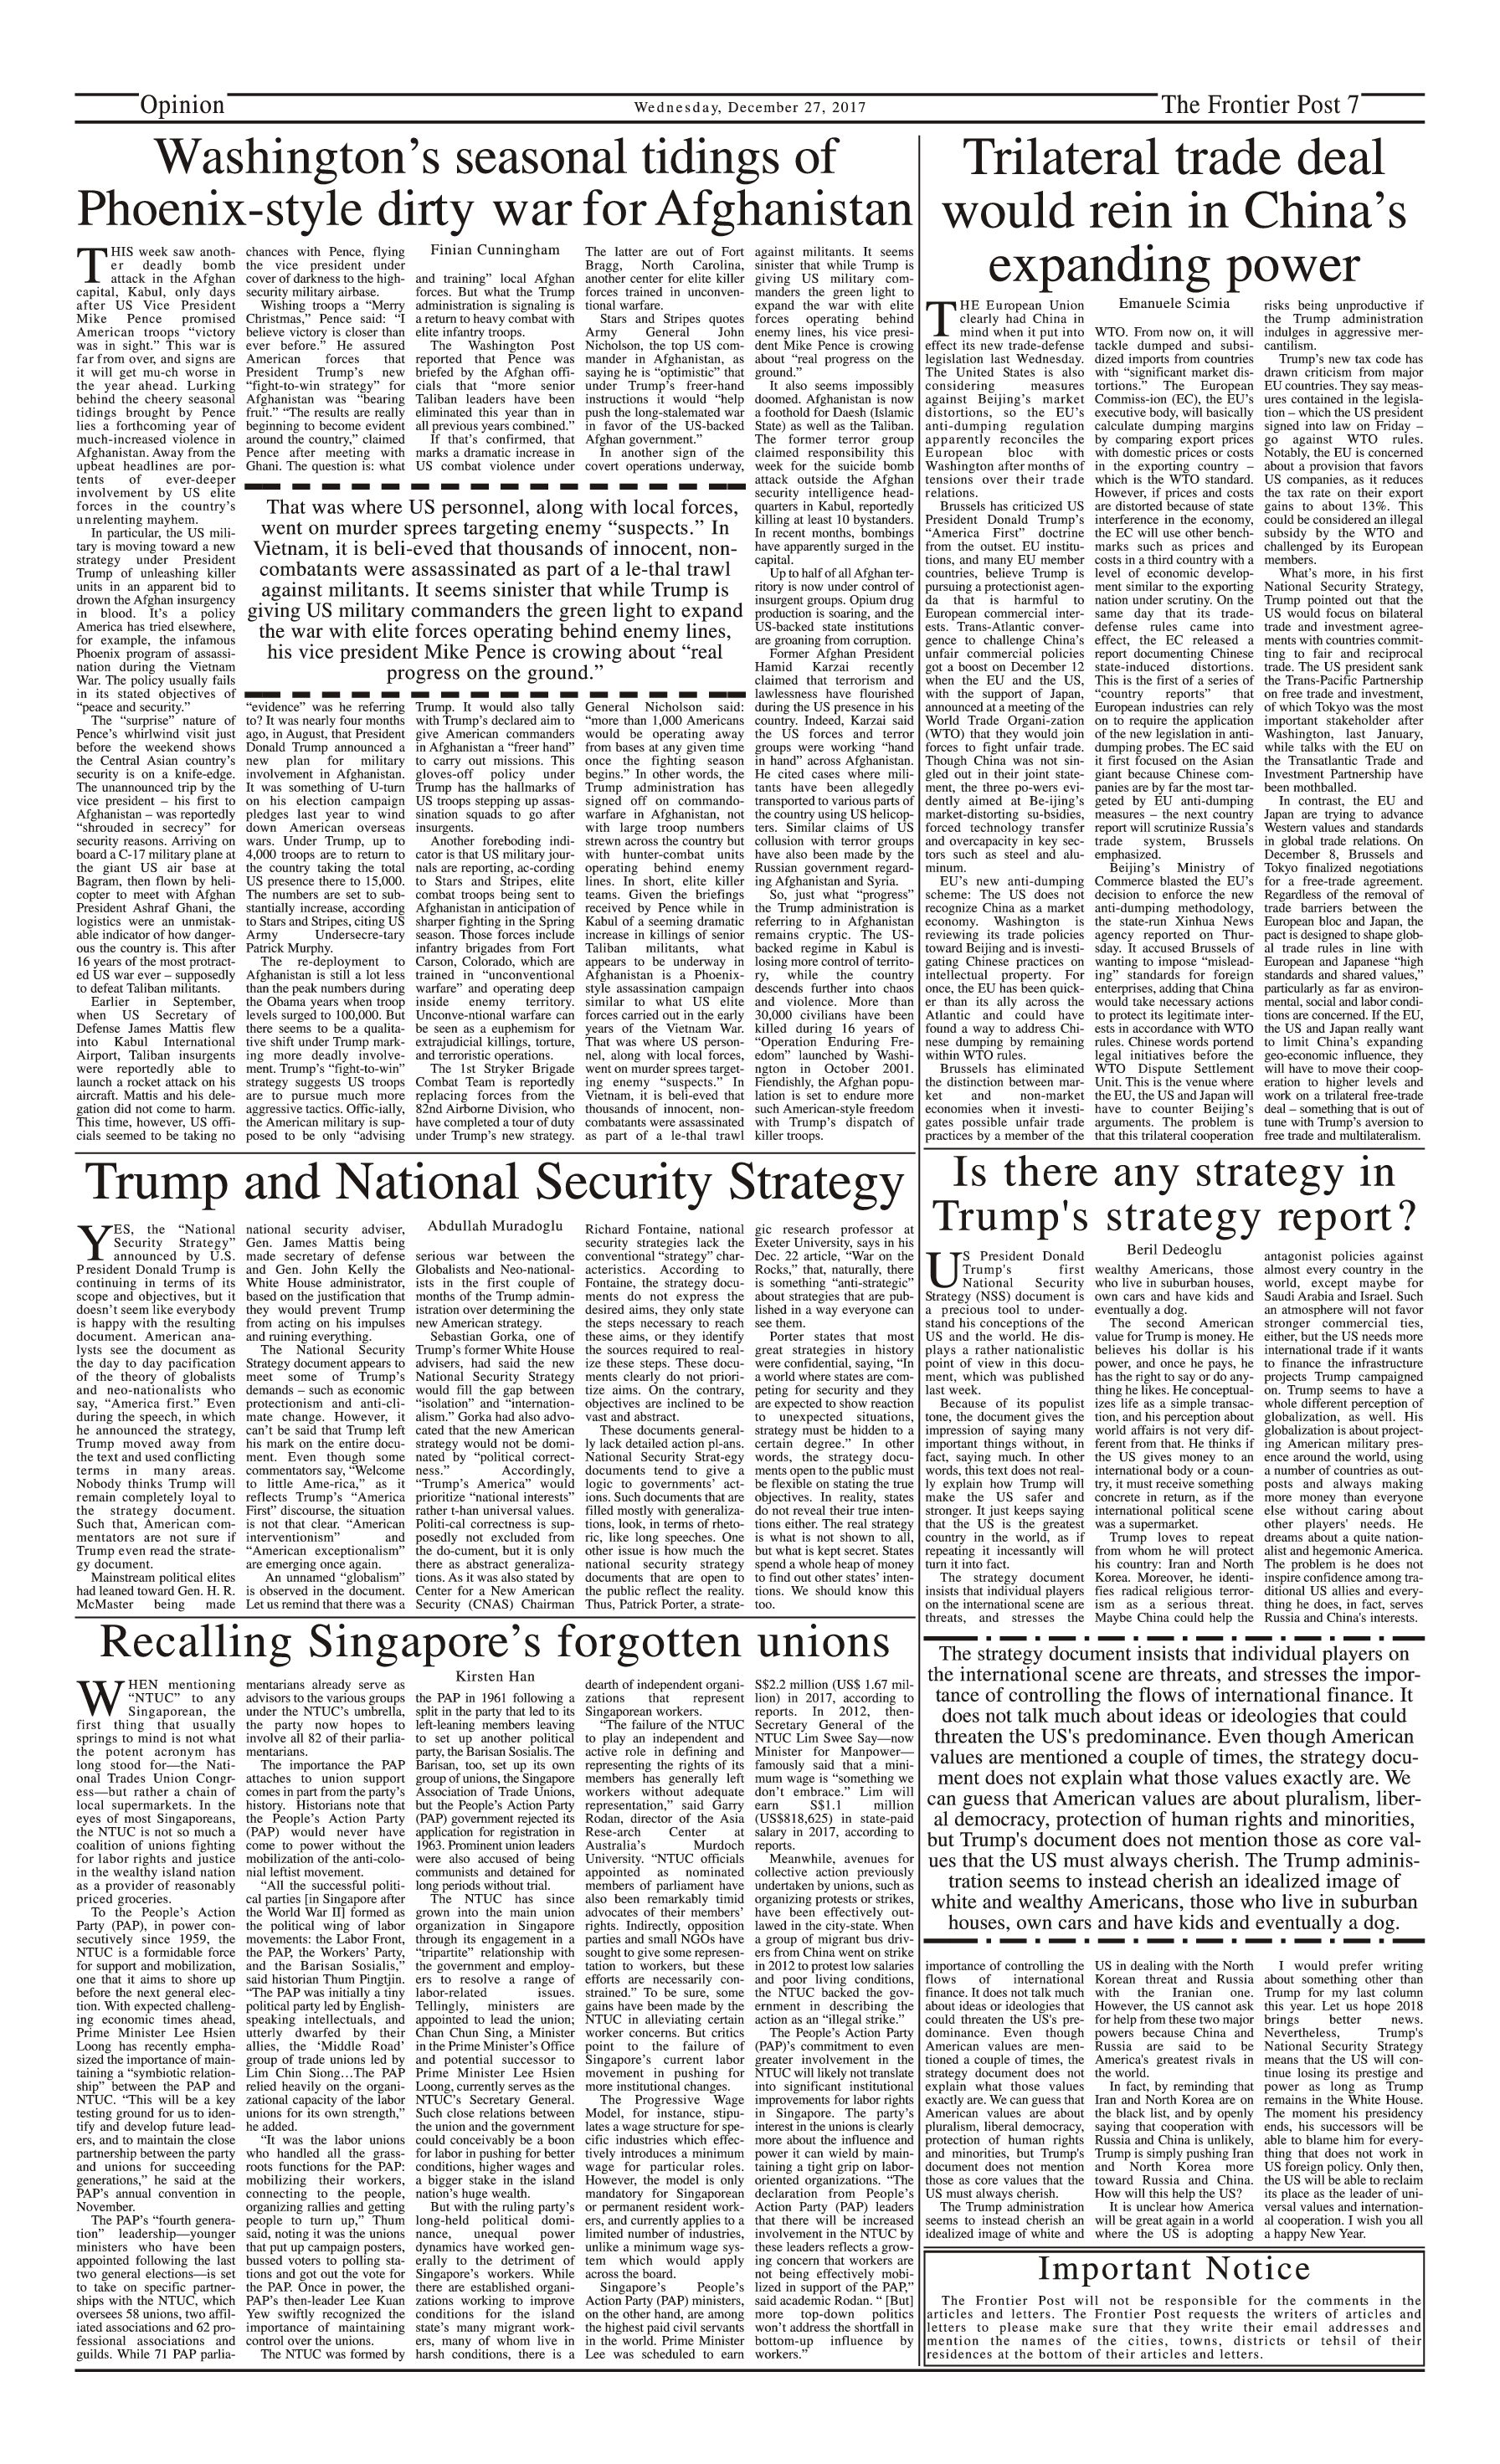 Opinion Page 27-12